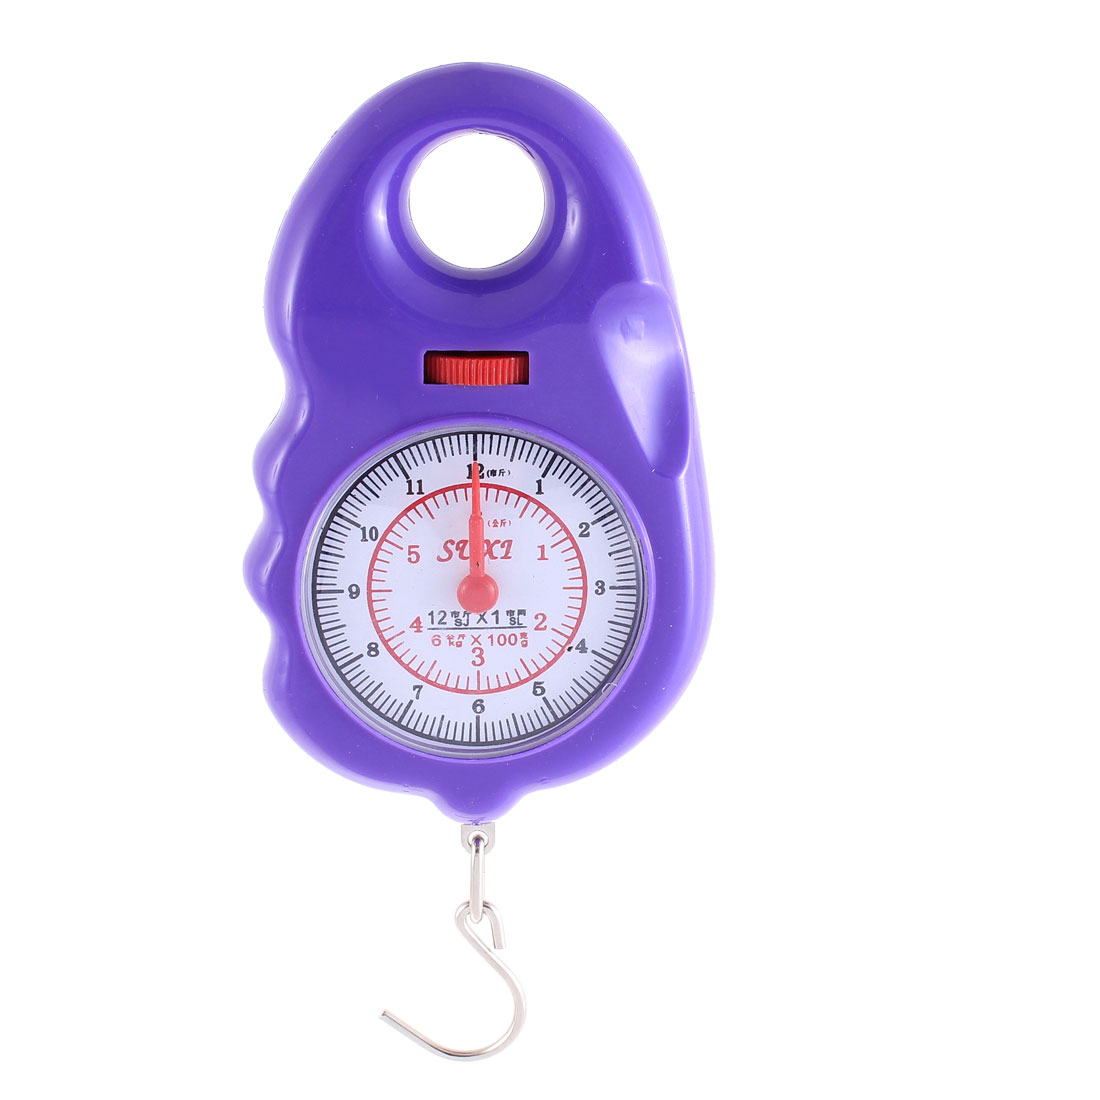 Handheld Portable Hook Scale Weighter 6Kg Purple